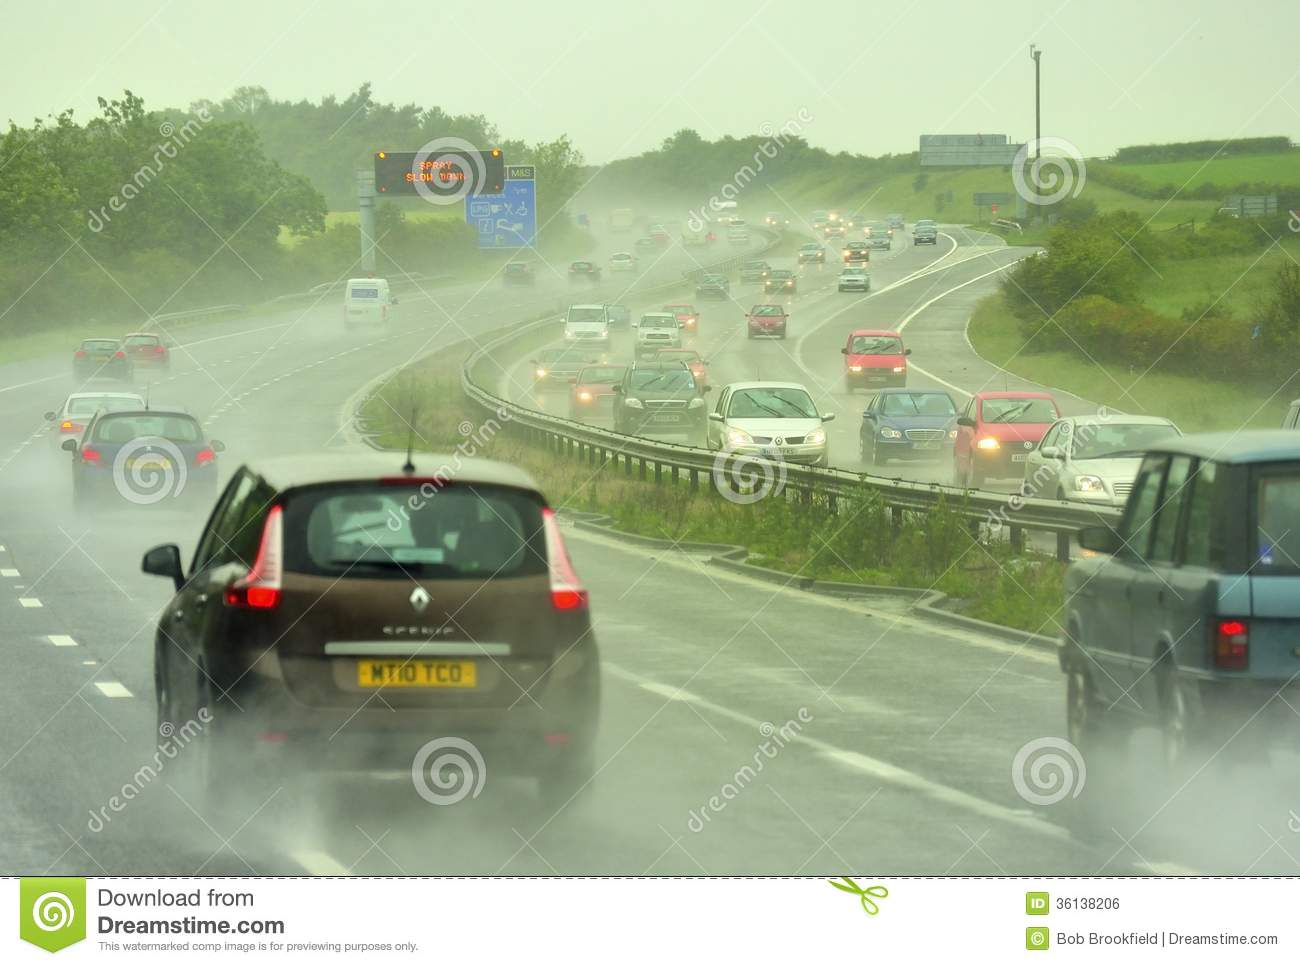 Bad driving weather M6